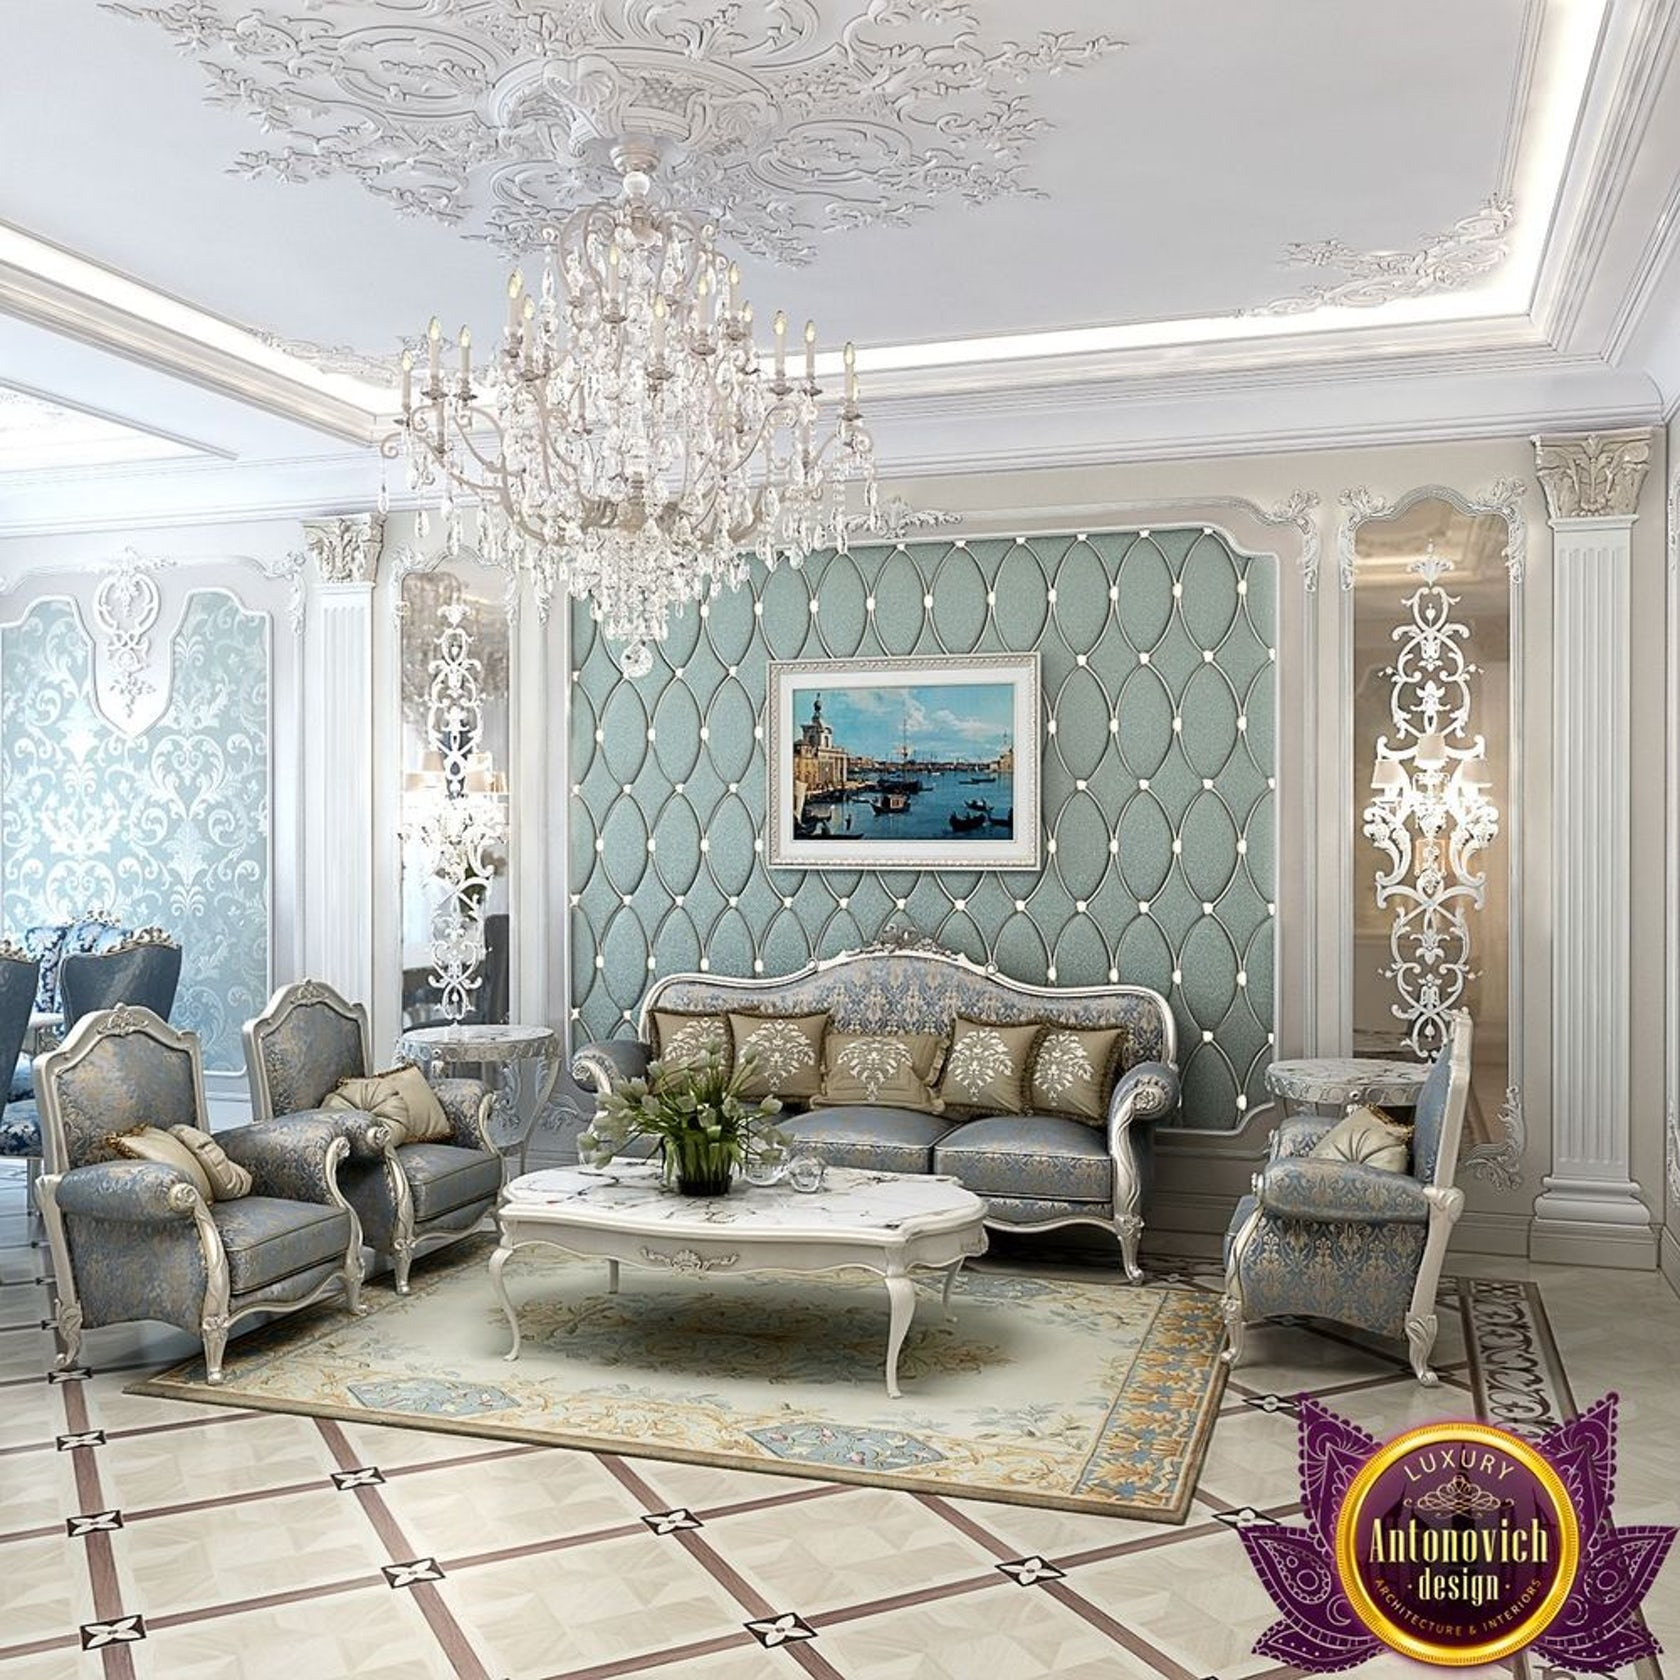 Masterpiece Of Interior Design From Katrina Antonovich